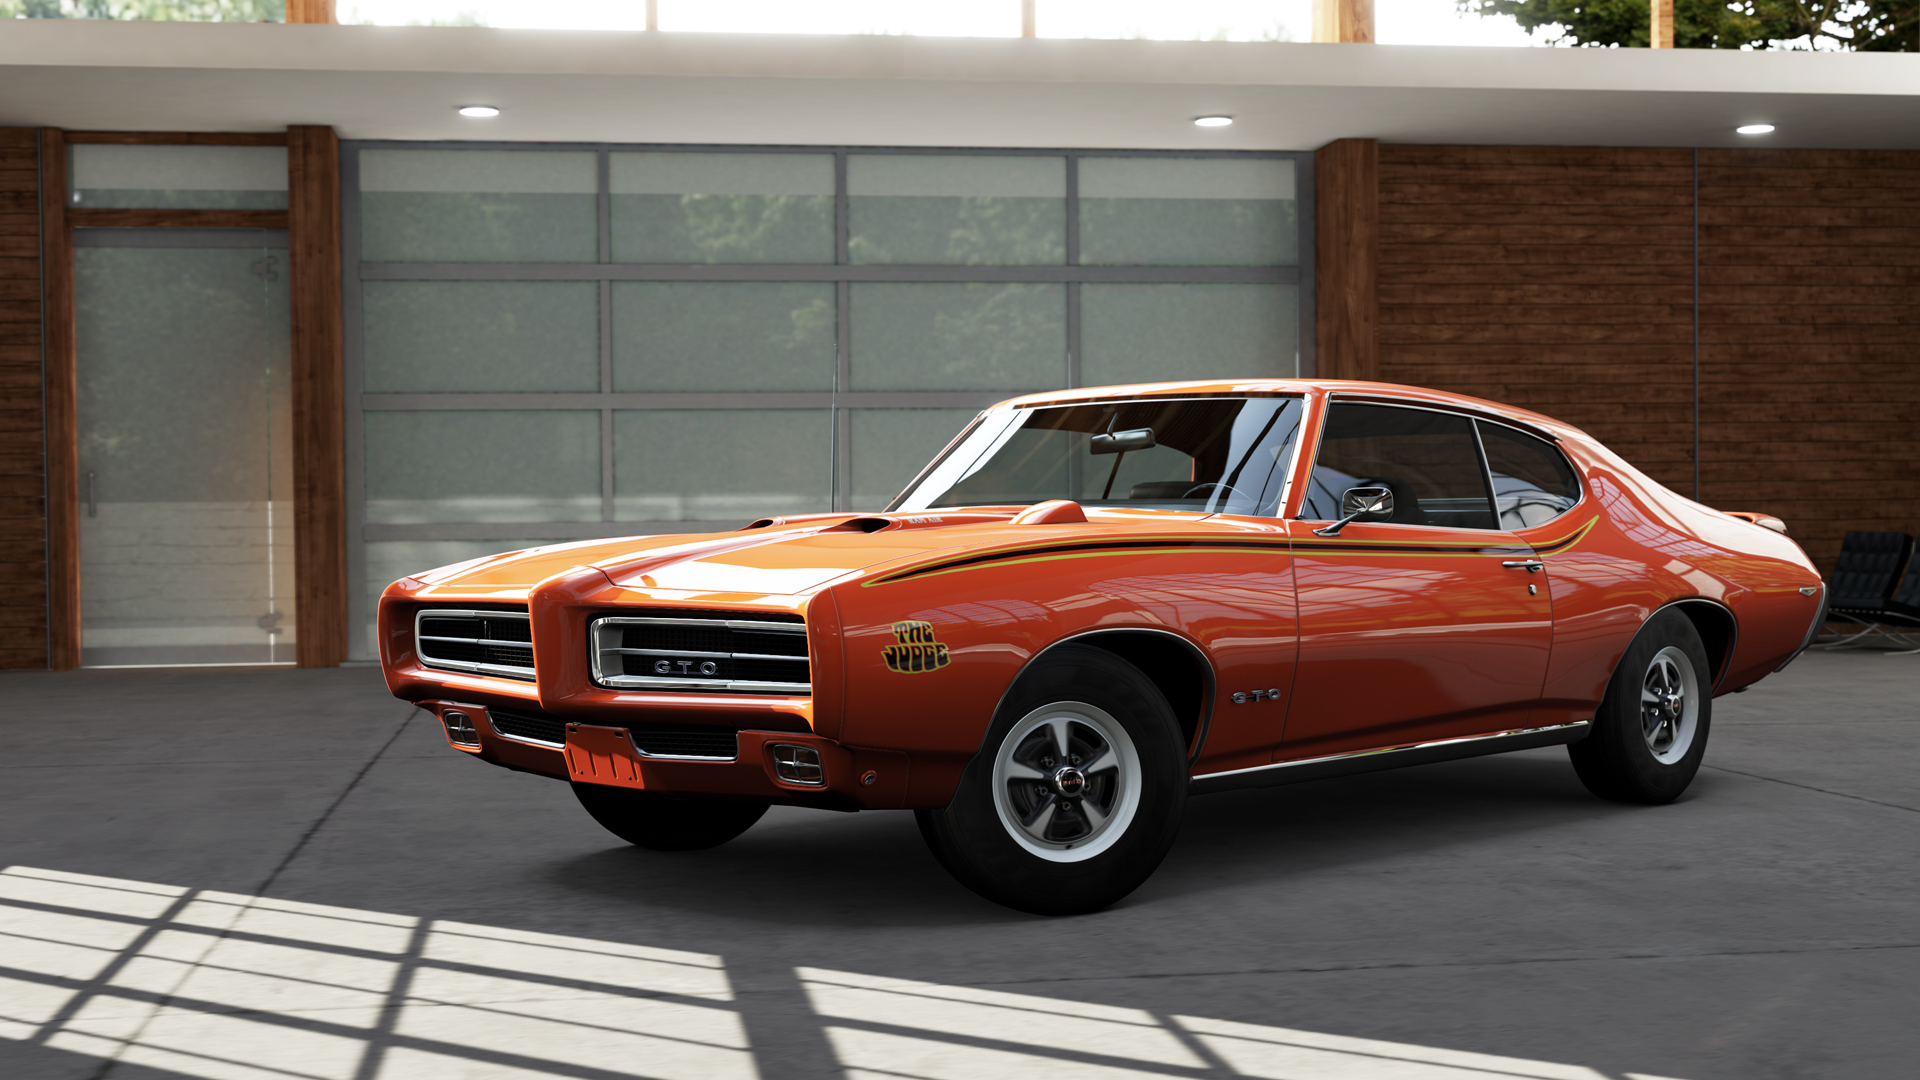 Pontiac GTO Judge | Forza Motorsport Wiki | FANDOM powered by Wikia